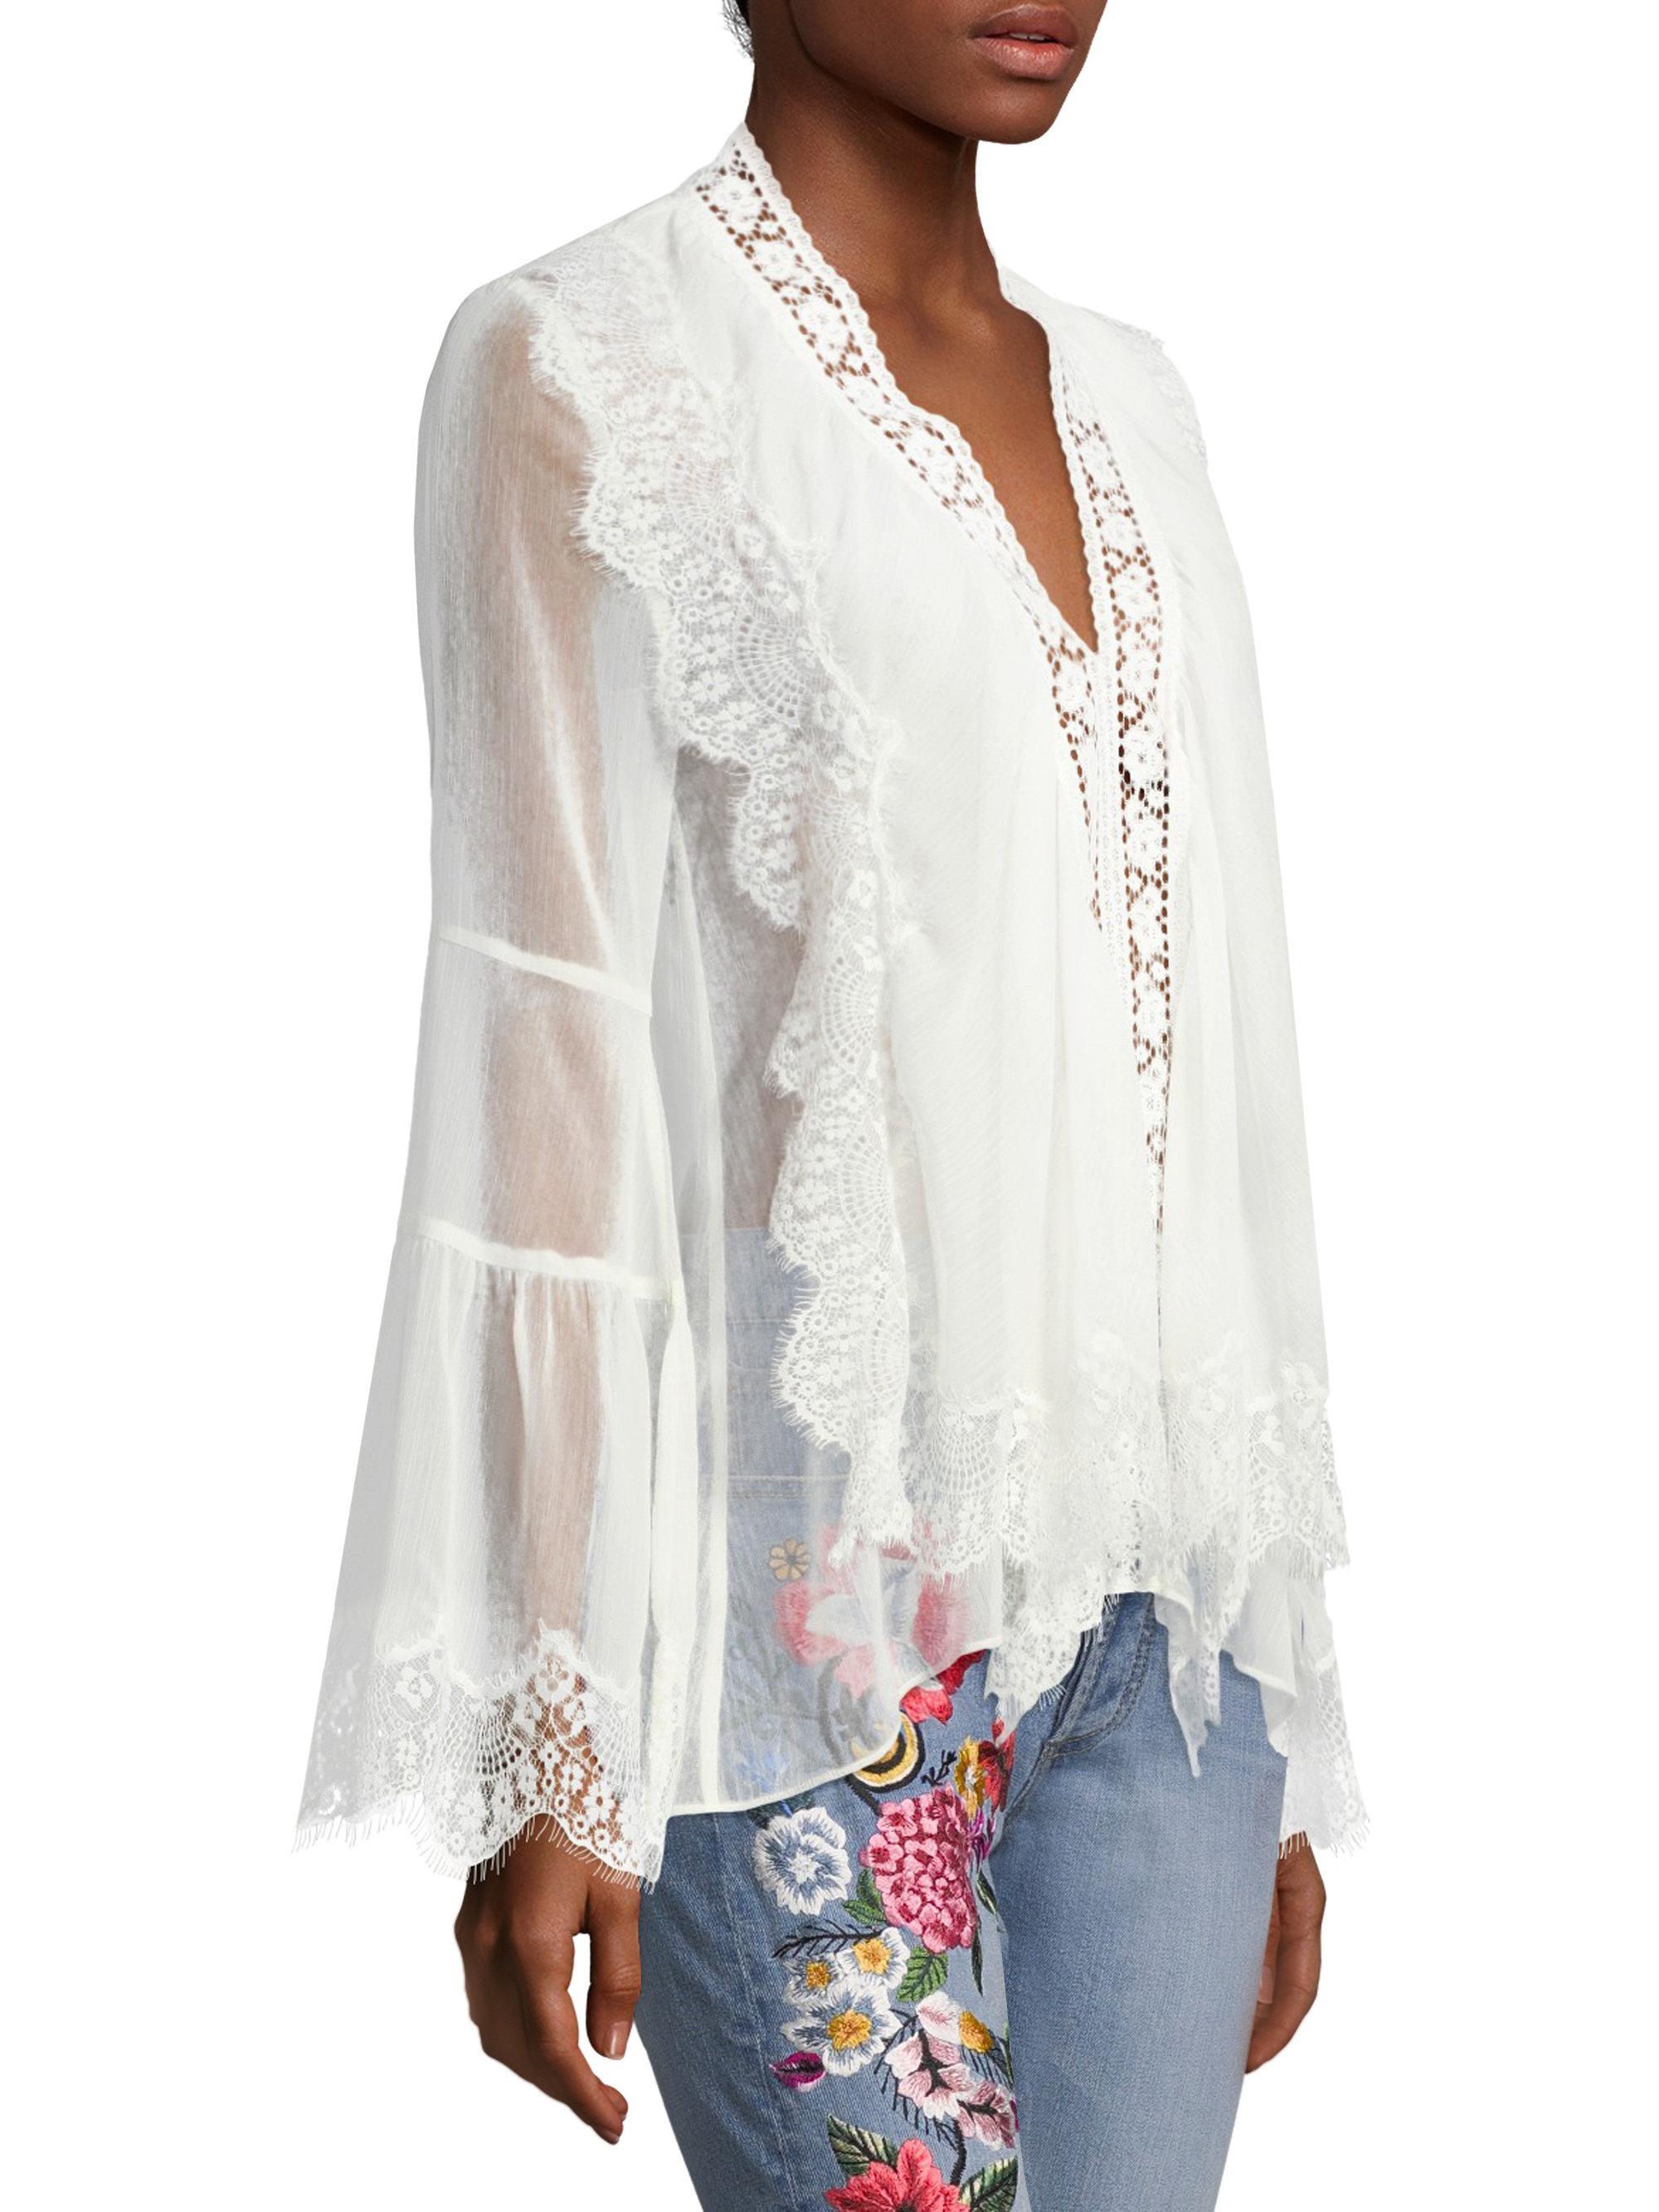 Shop Cheap Price Jaden Lace-paneled Gauze Blouse - Off-white Alice & Olivia Cheap Real Clearance Visit New Buy Cheap Fast Delivery Cheap Sale Sneakernews Tu3N1